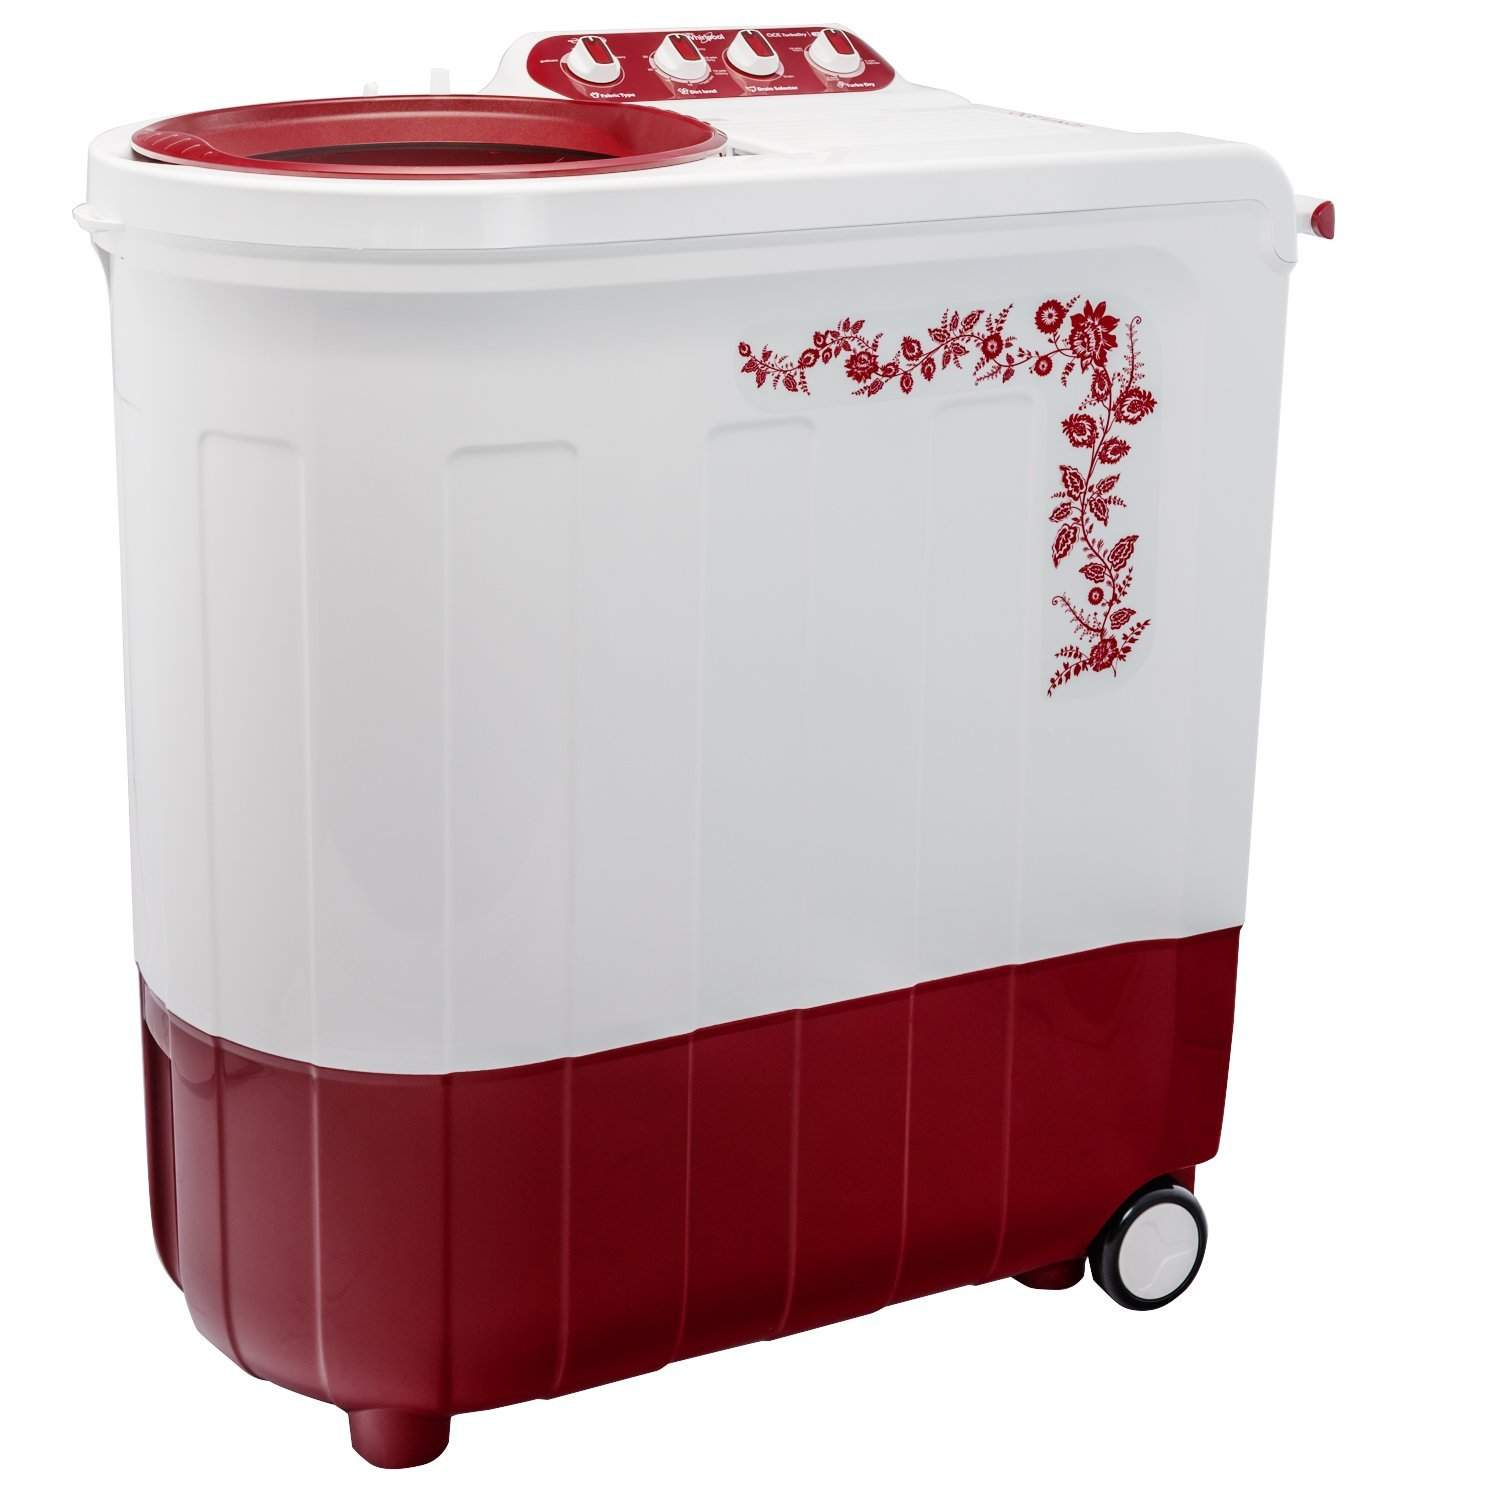 Whirlpool Ace 7.5 Turbo Dry Semi-automatic Top-loading Washing Machine (7.5 Kg Coral Red)